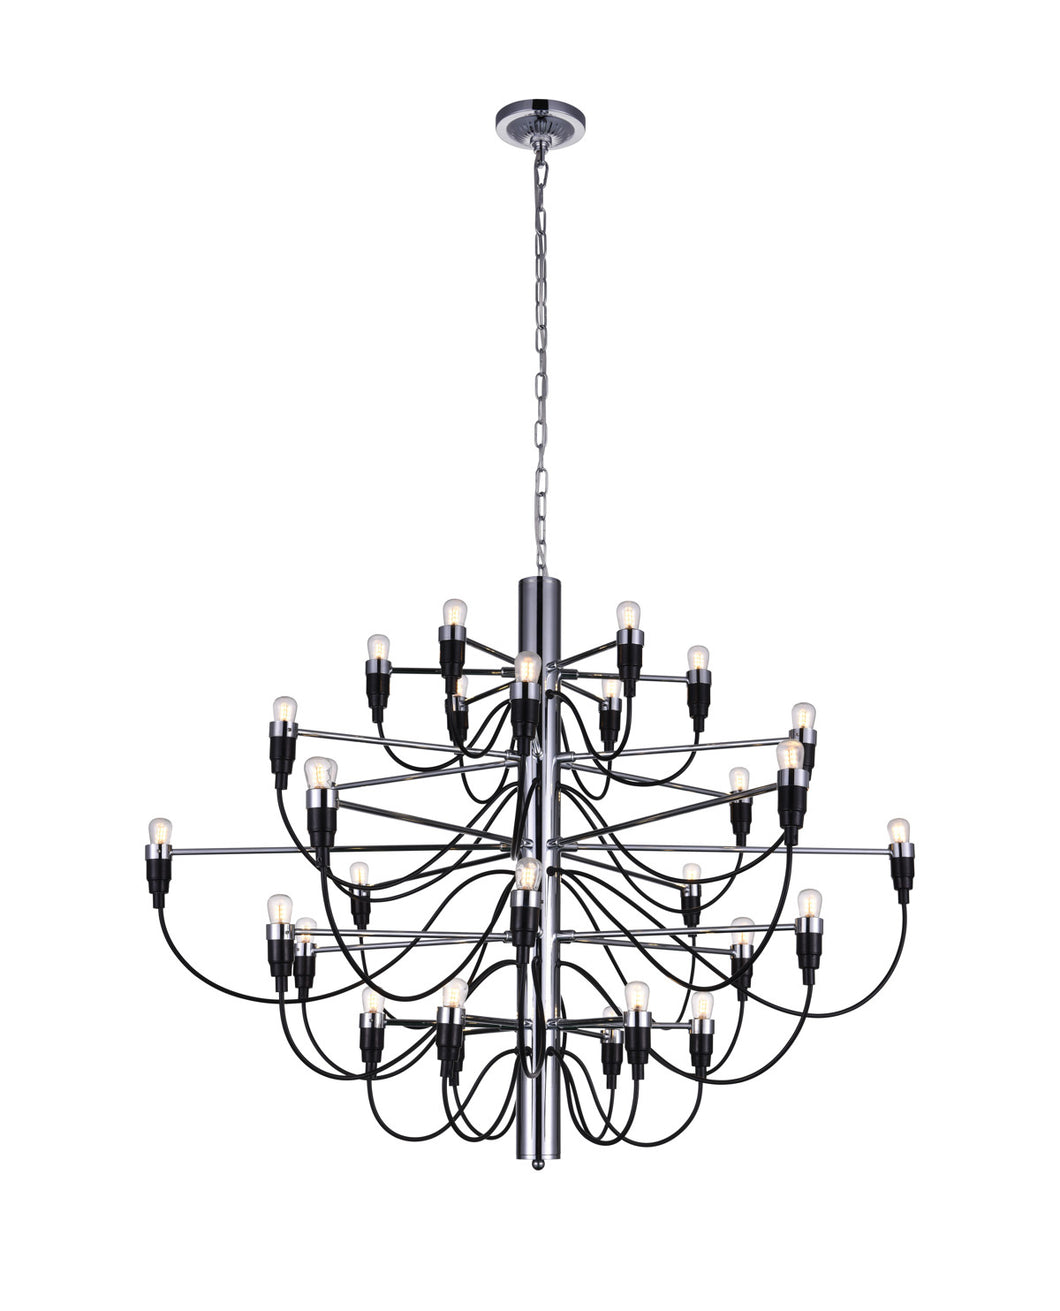 30 Light  Chandelier with Chrome finish